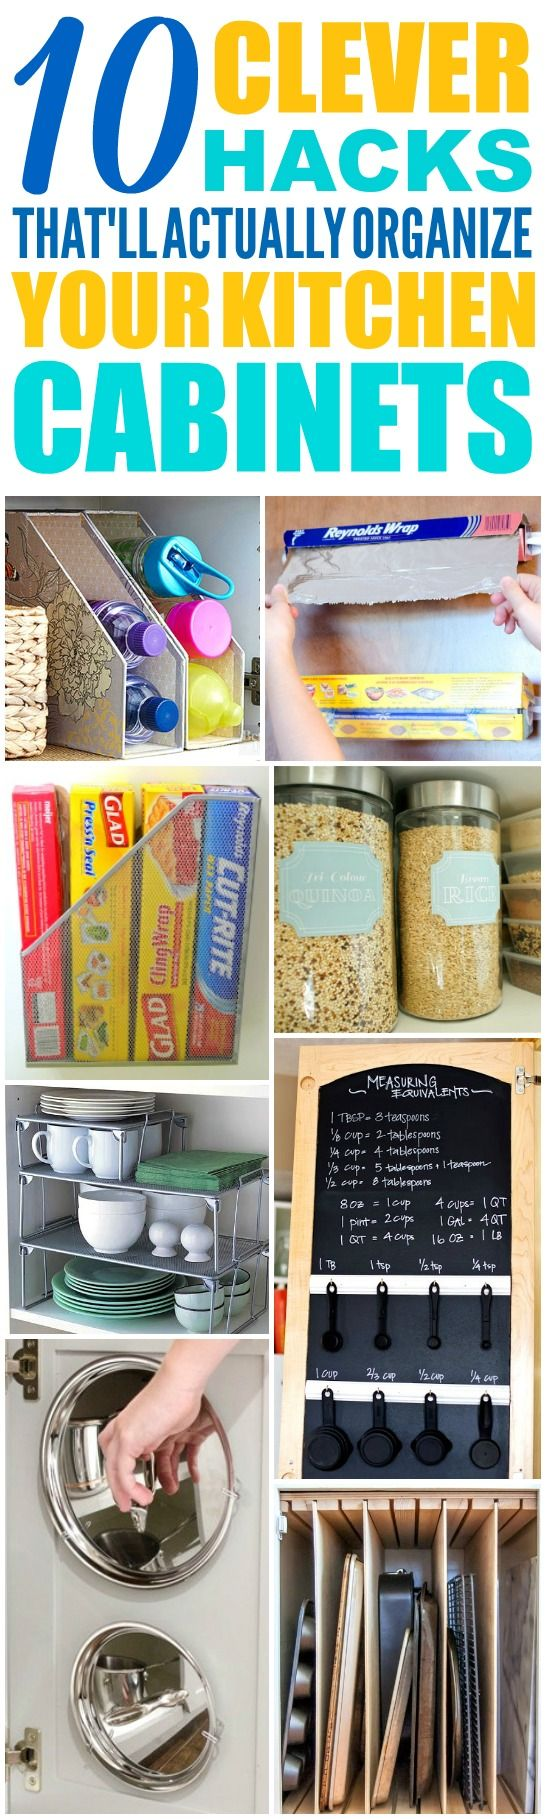 These 10 Clever Kitchen Cabinet Organization Hacks are THE BEST! I'm so glad I found these AMAZING tips! Now I have some great ways to keep my cabinets and kitchen clutter free, clean, and organized! Definitely pinning!